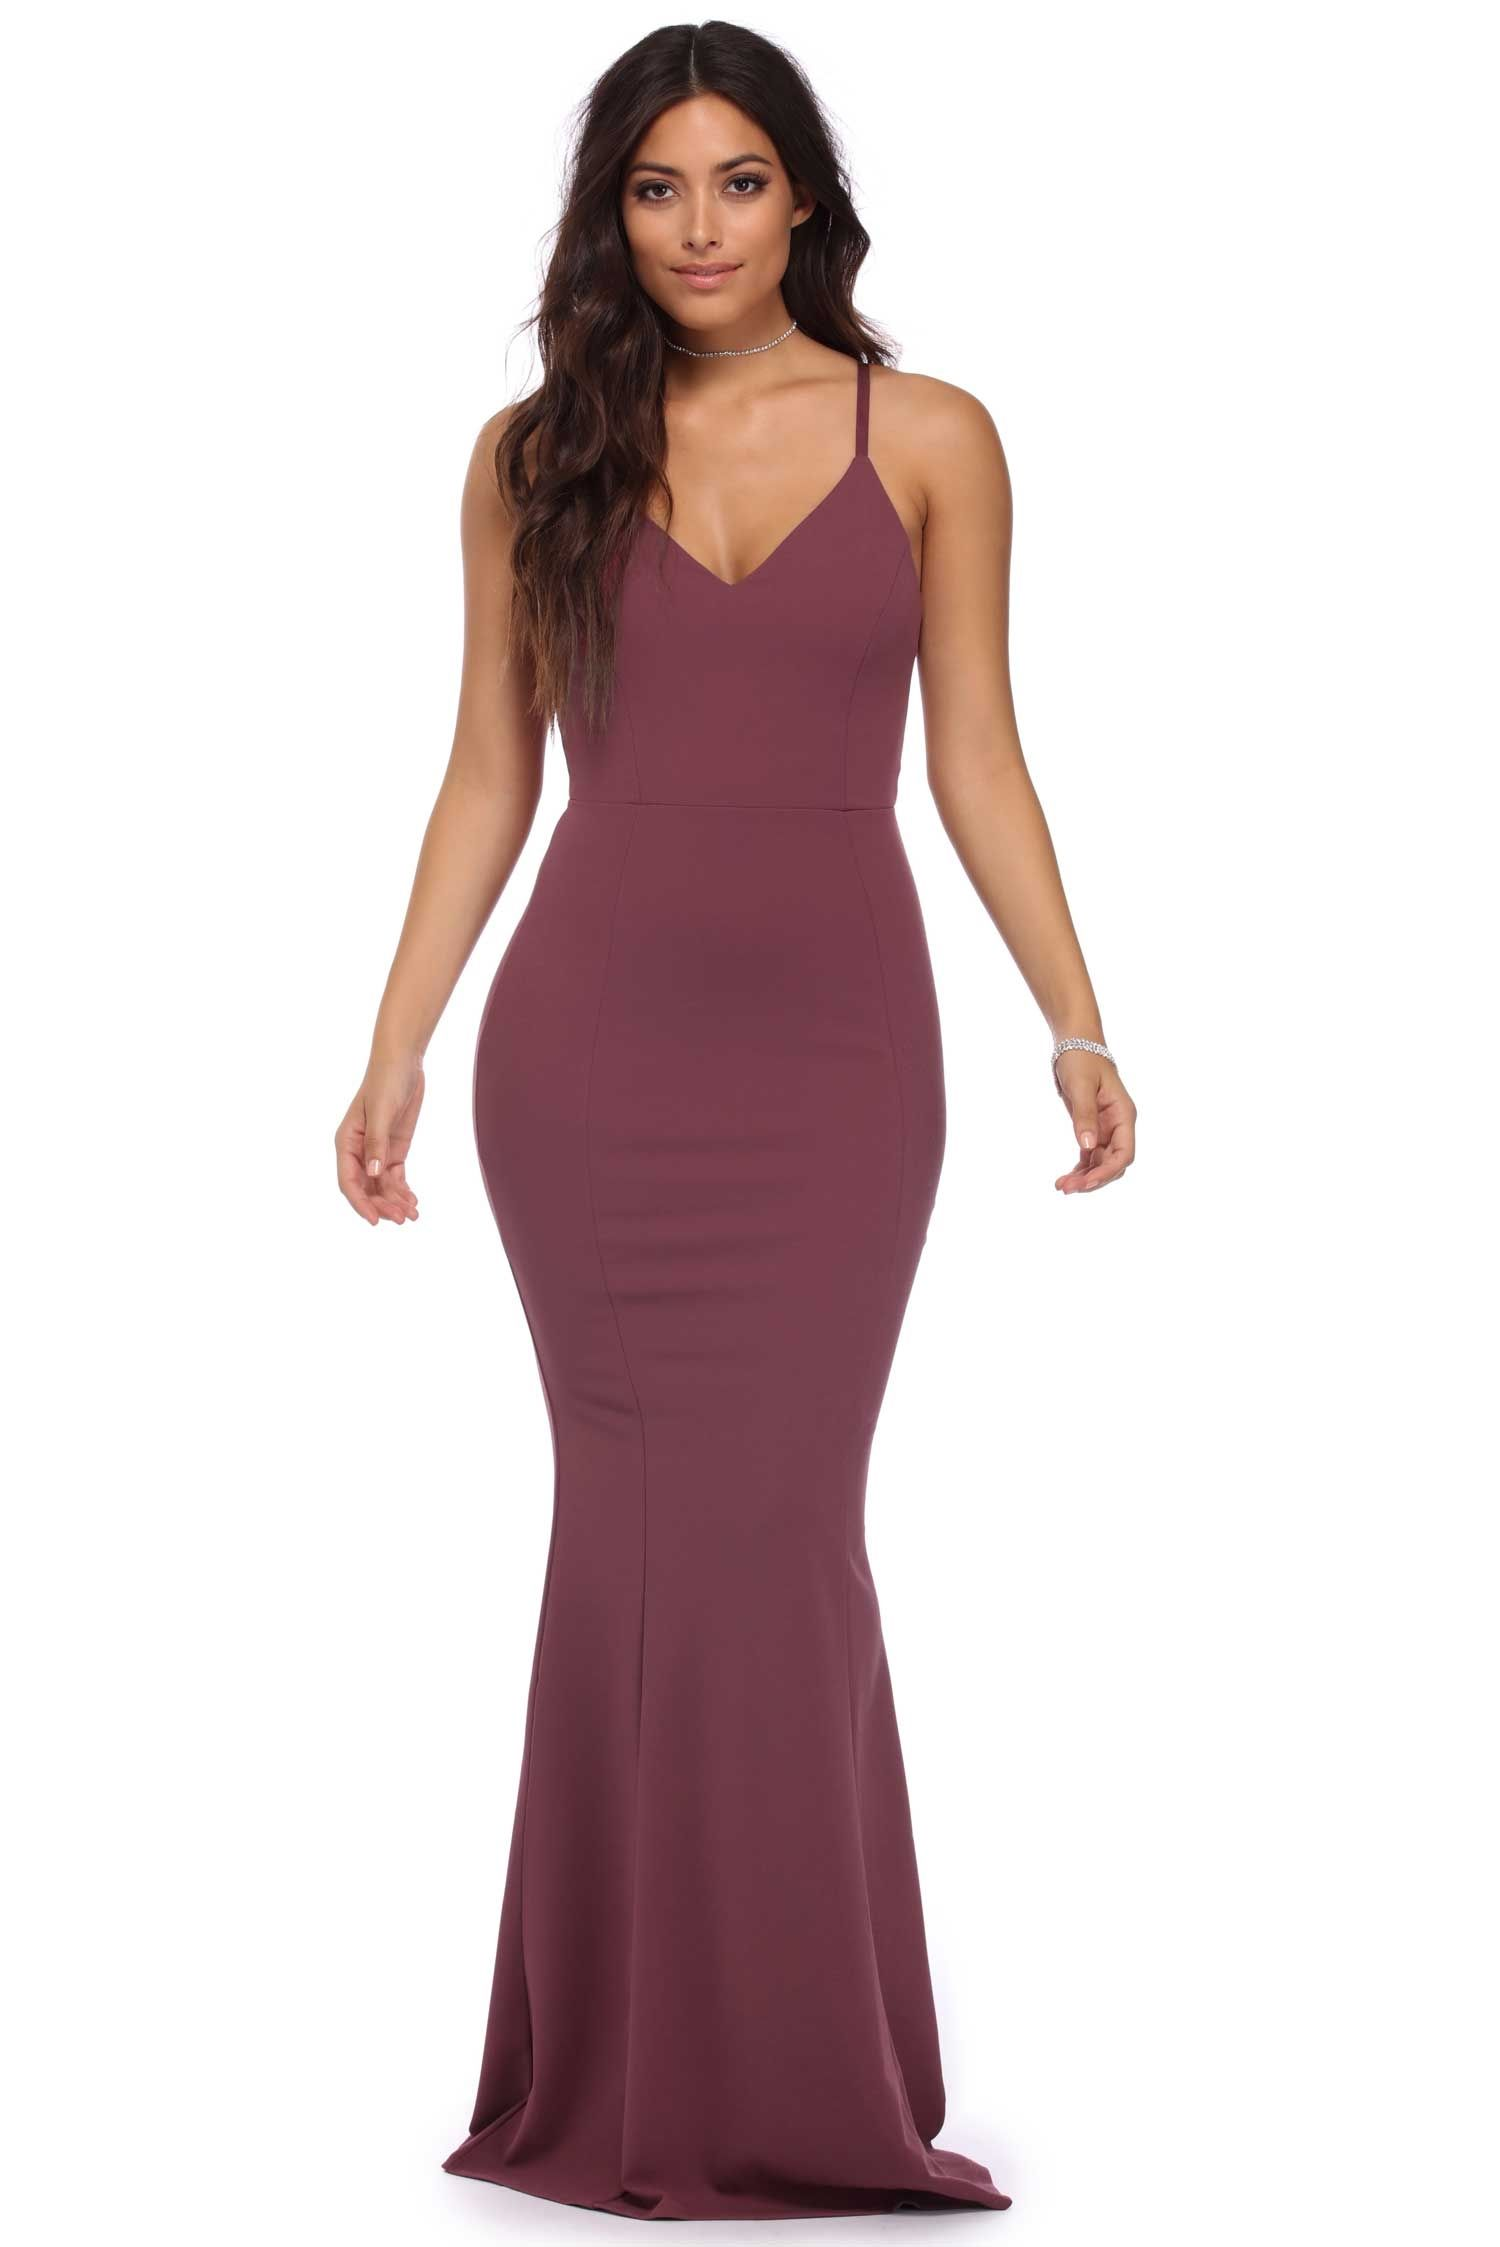 Windsor Party Dresses